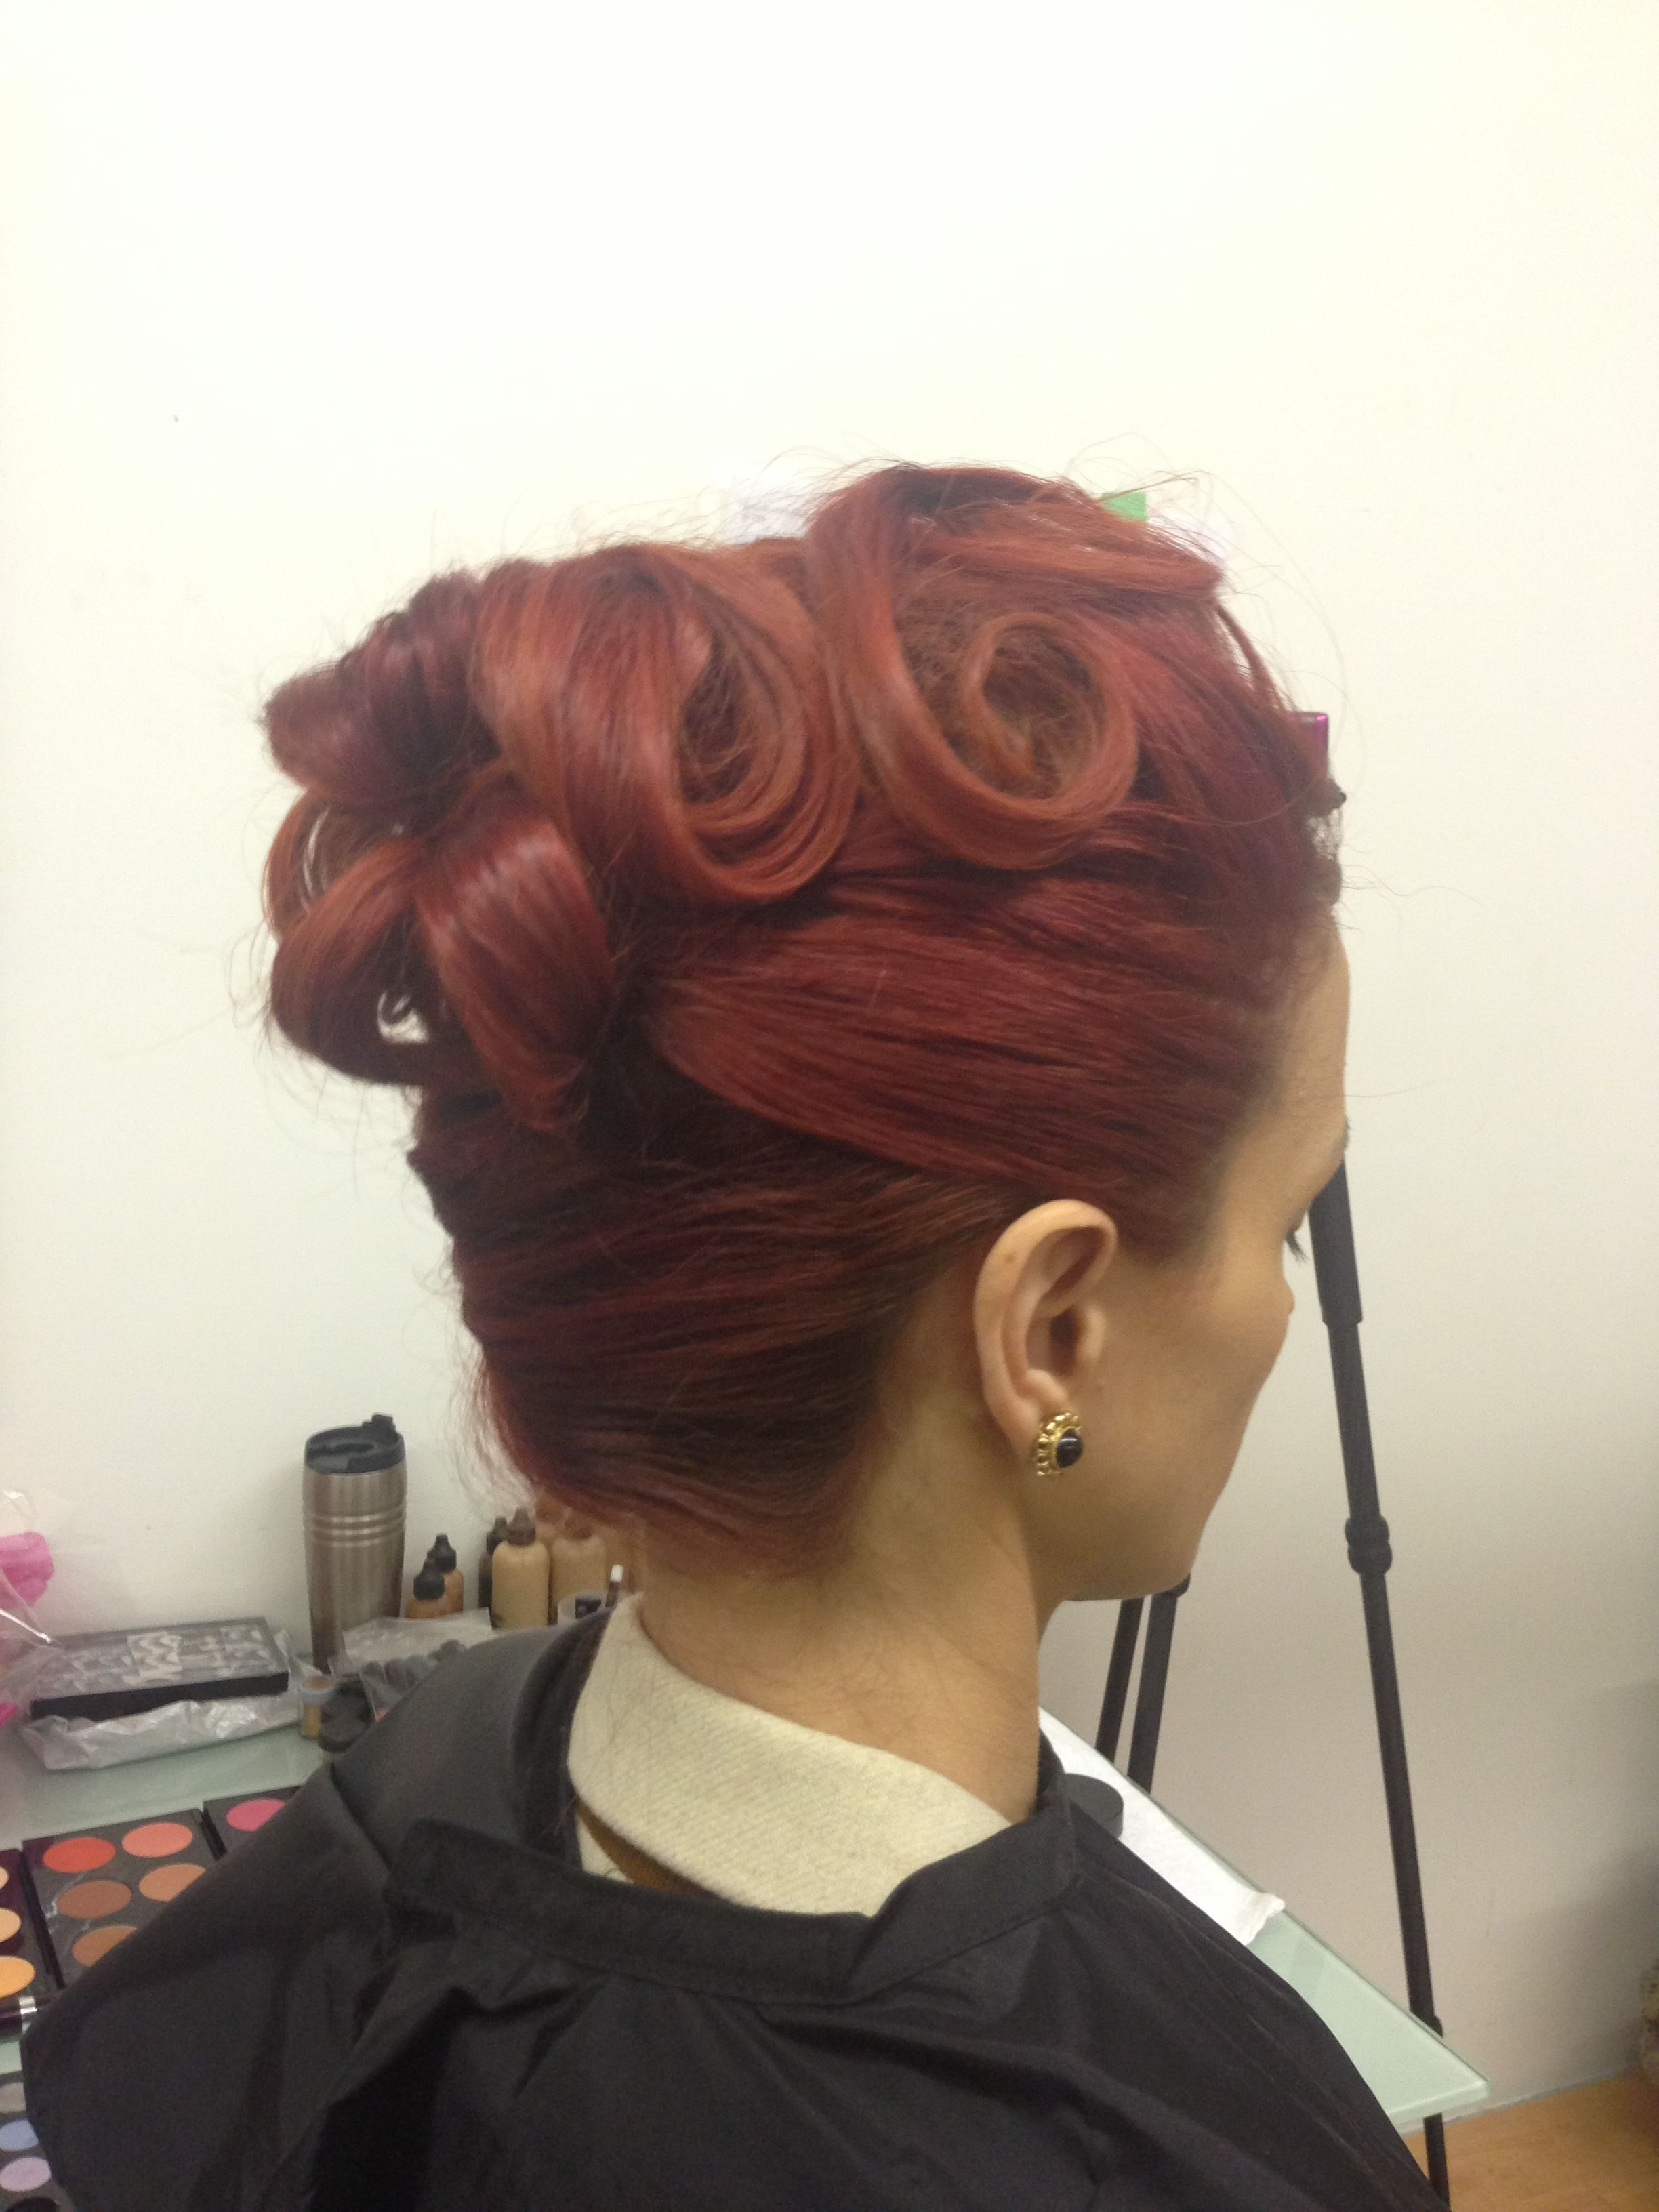 Classic Retro Updo - Makeup and Hair by Kayana Beauty Trends www.kayanabeautytrends.com